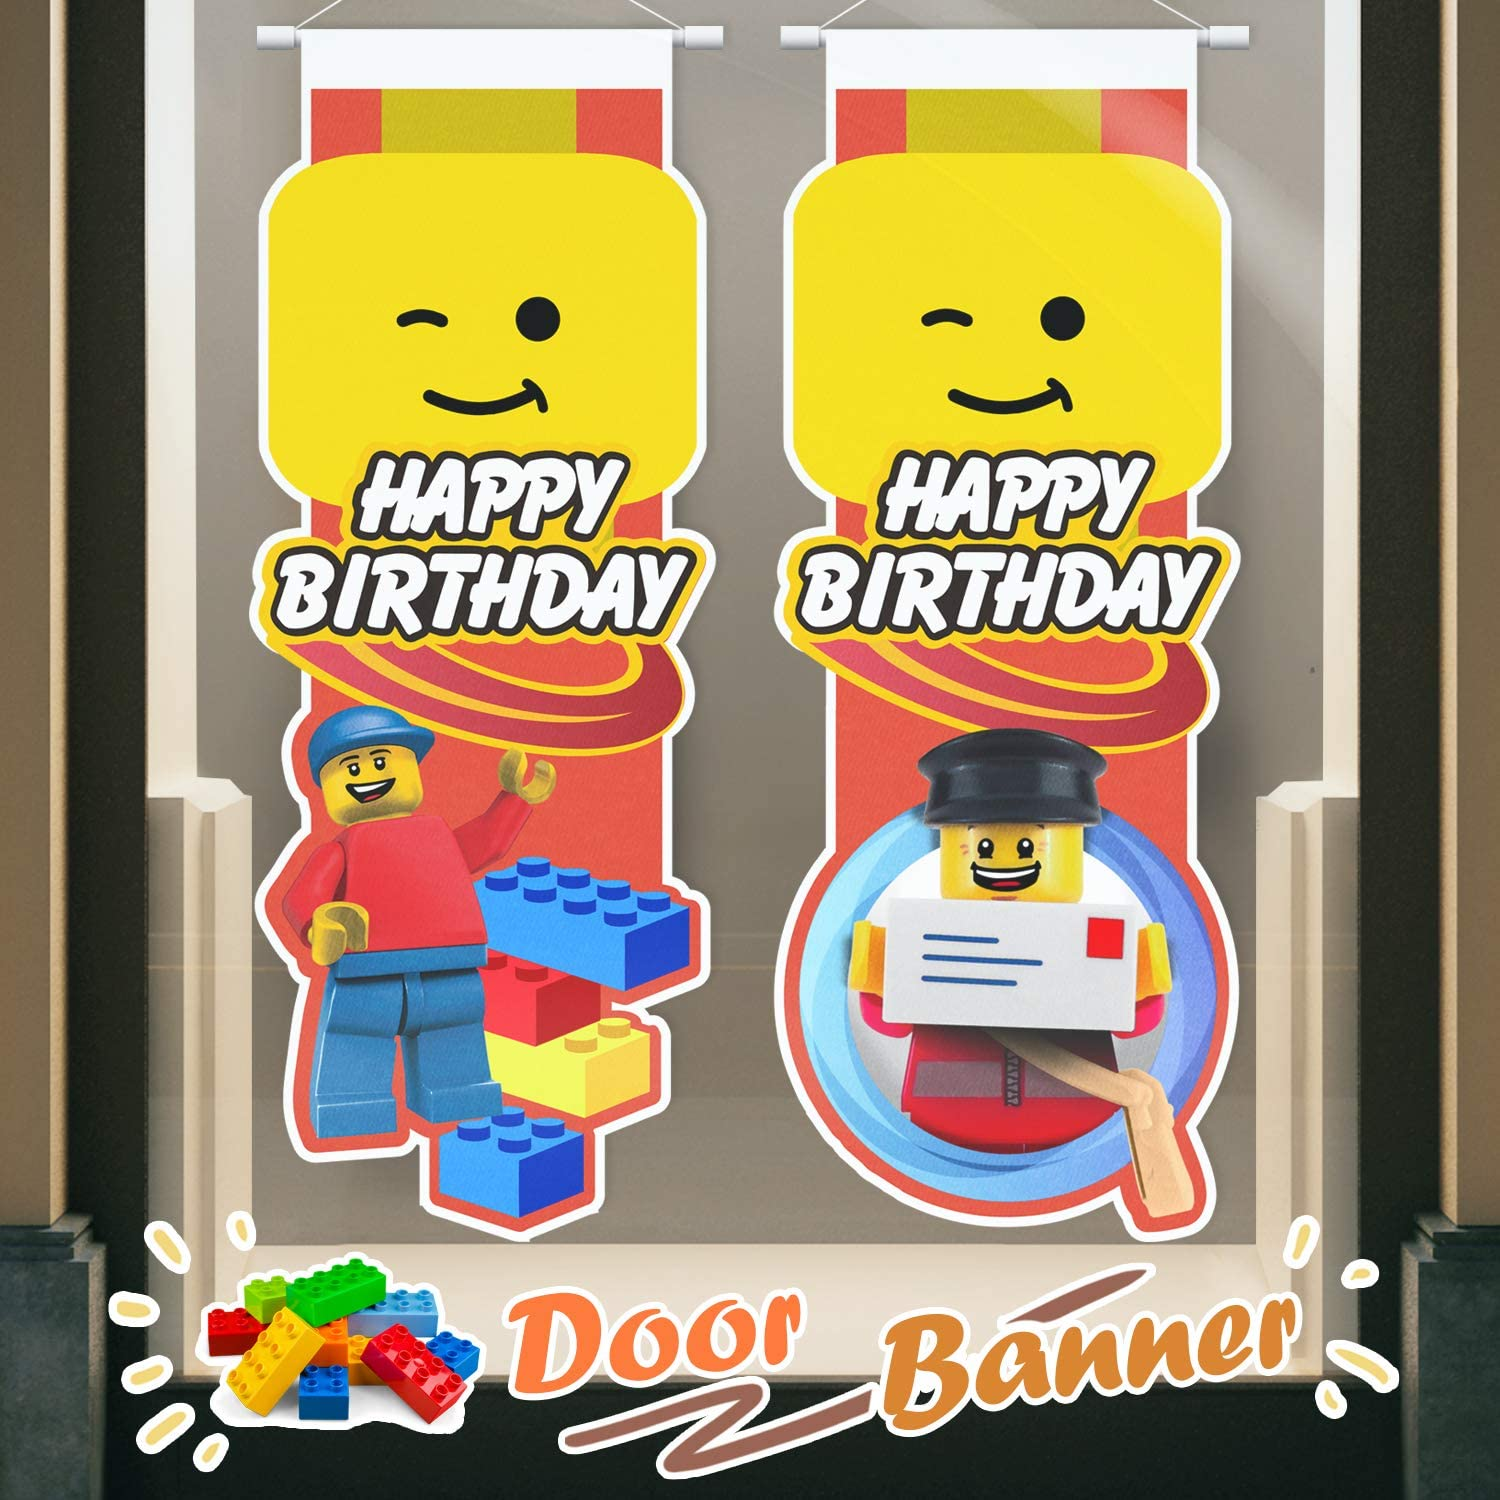 Building Block Happy Birthday Door Banner Brick and Block Themed Hanging Yard Porch Sign Party Decorations Supplies